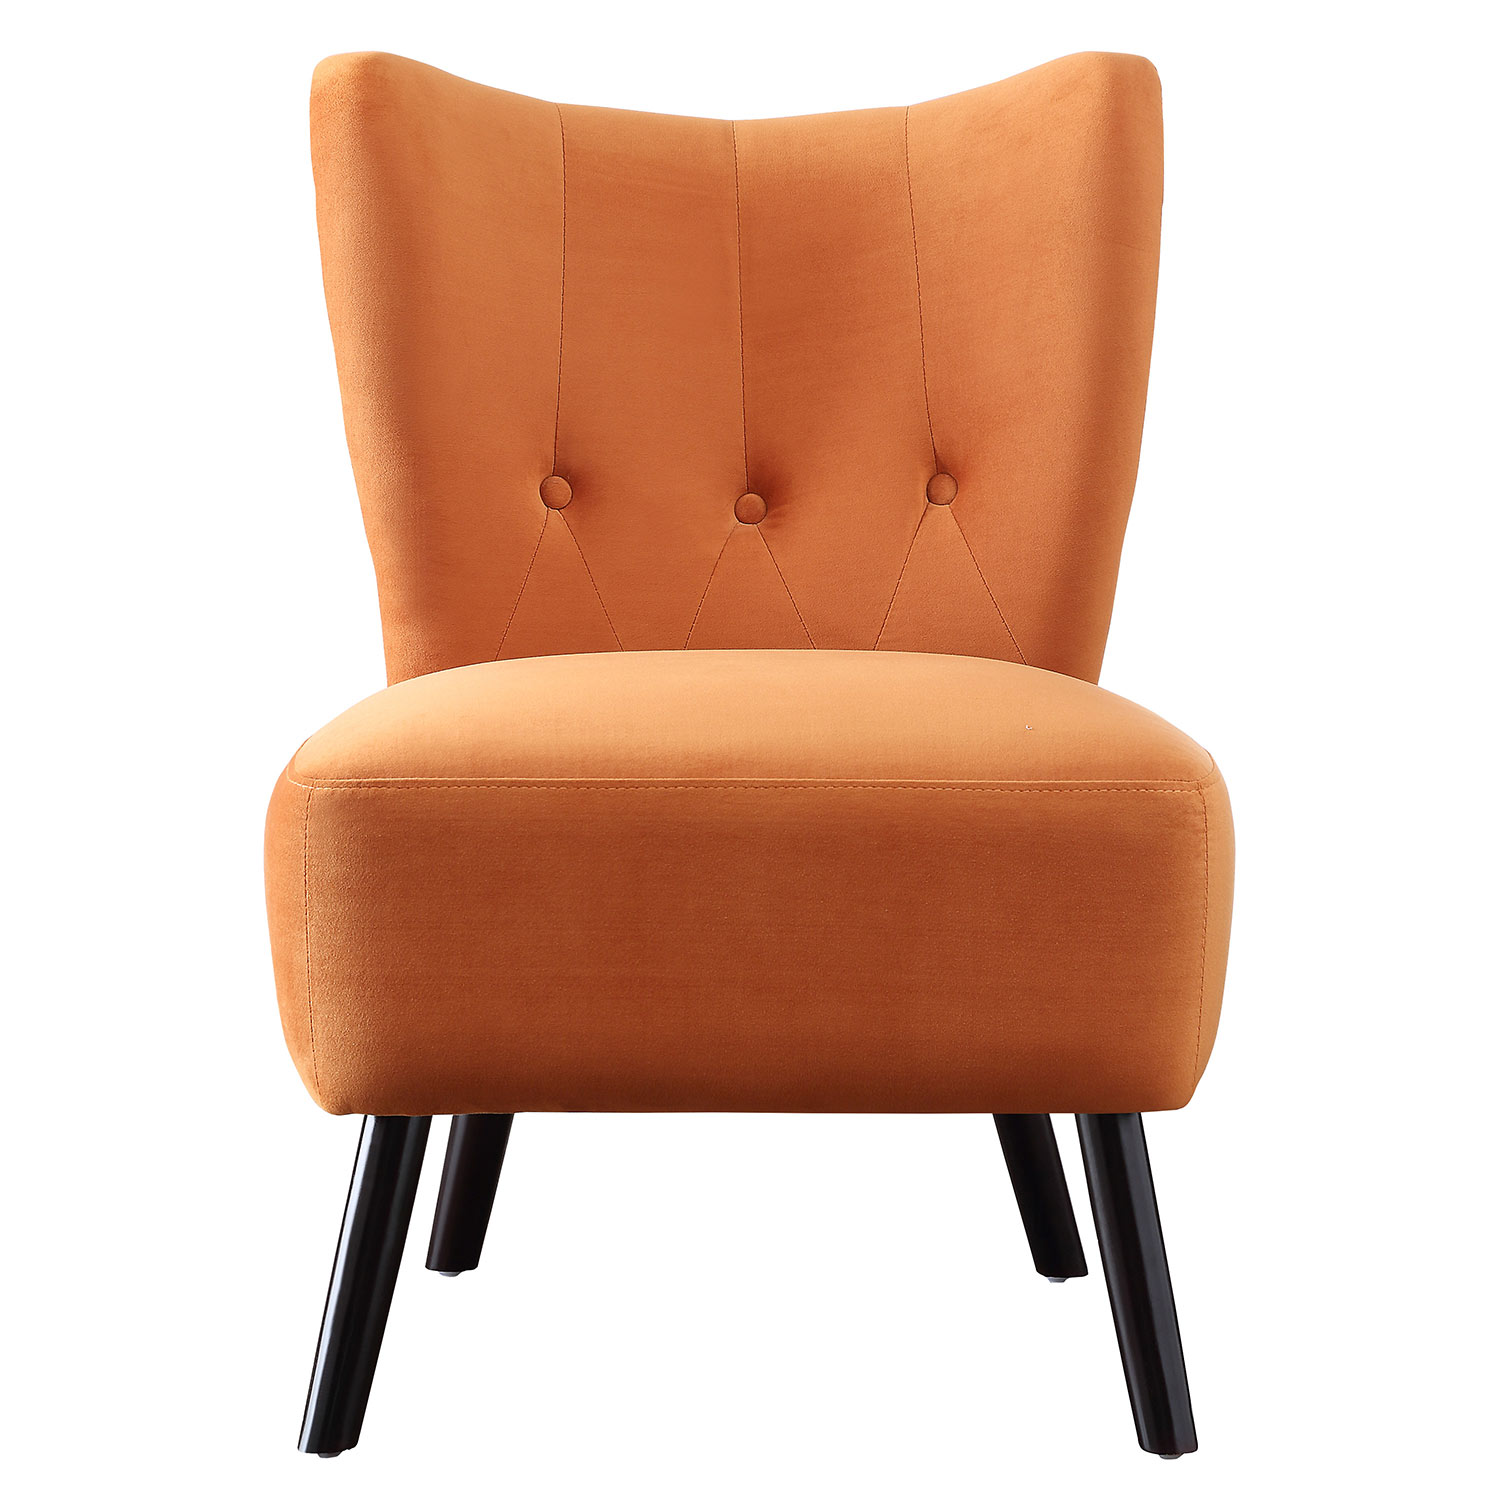 Homelegance Imani Accent Chair - Orange